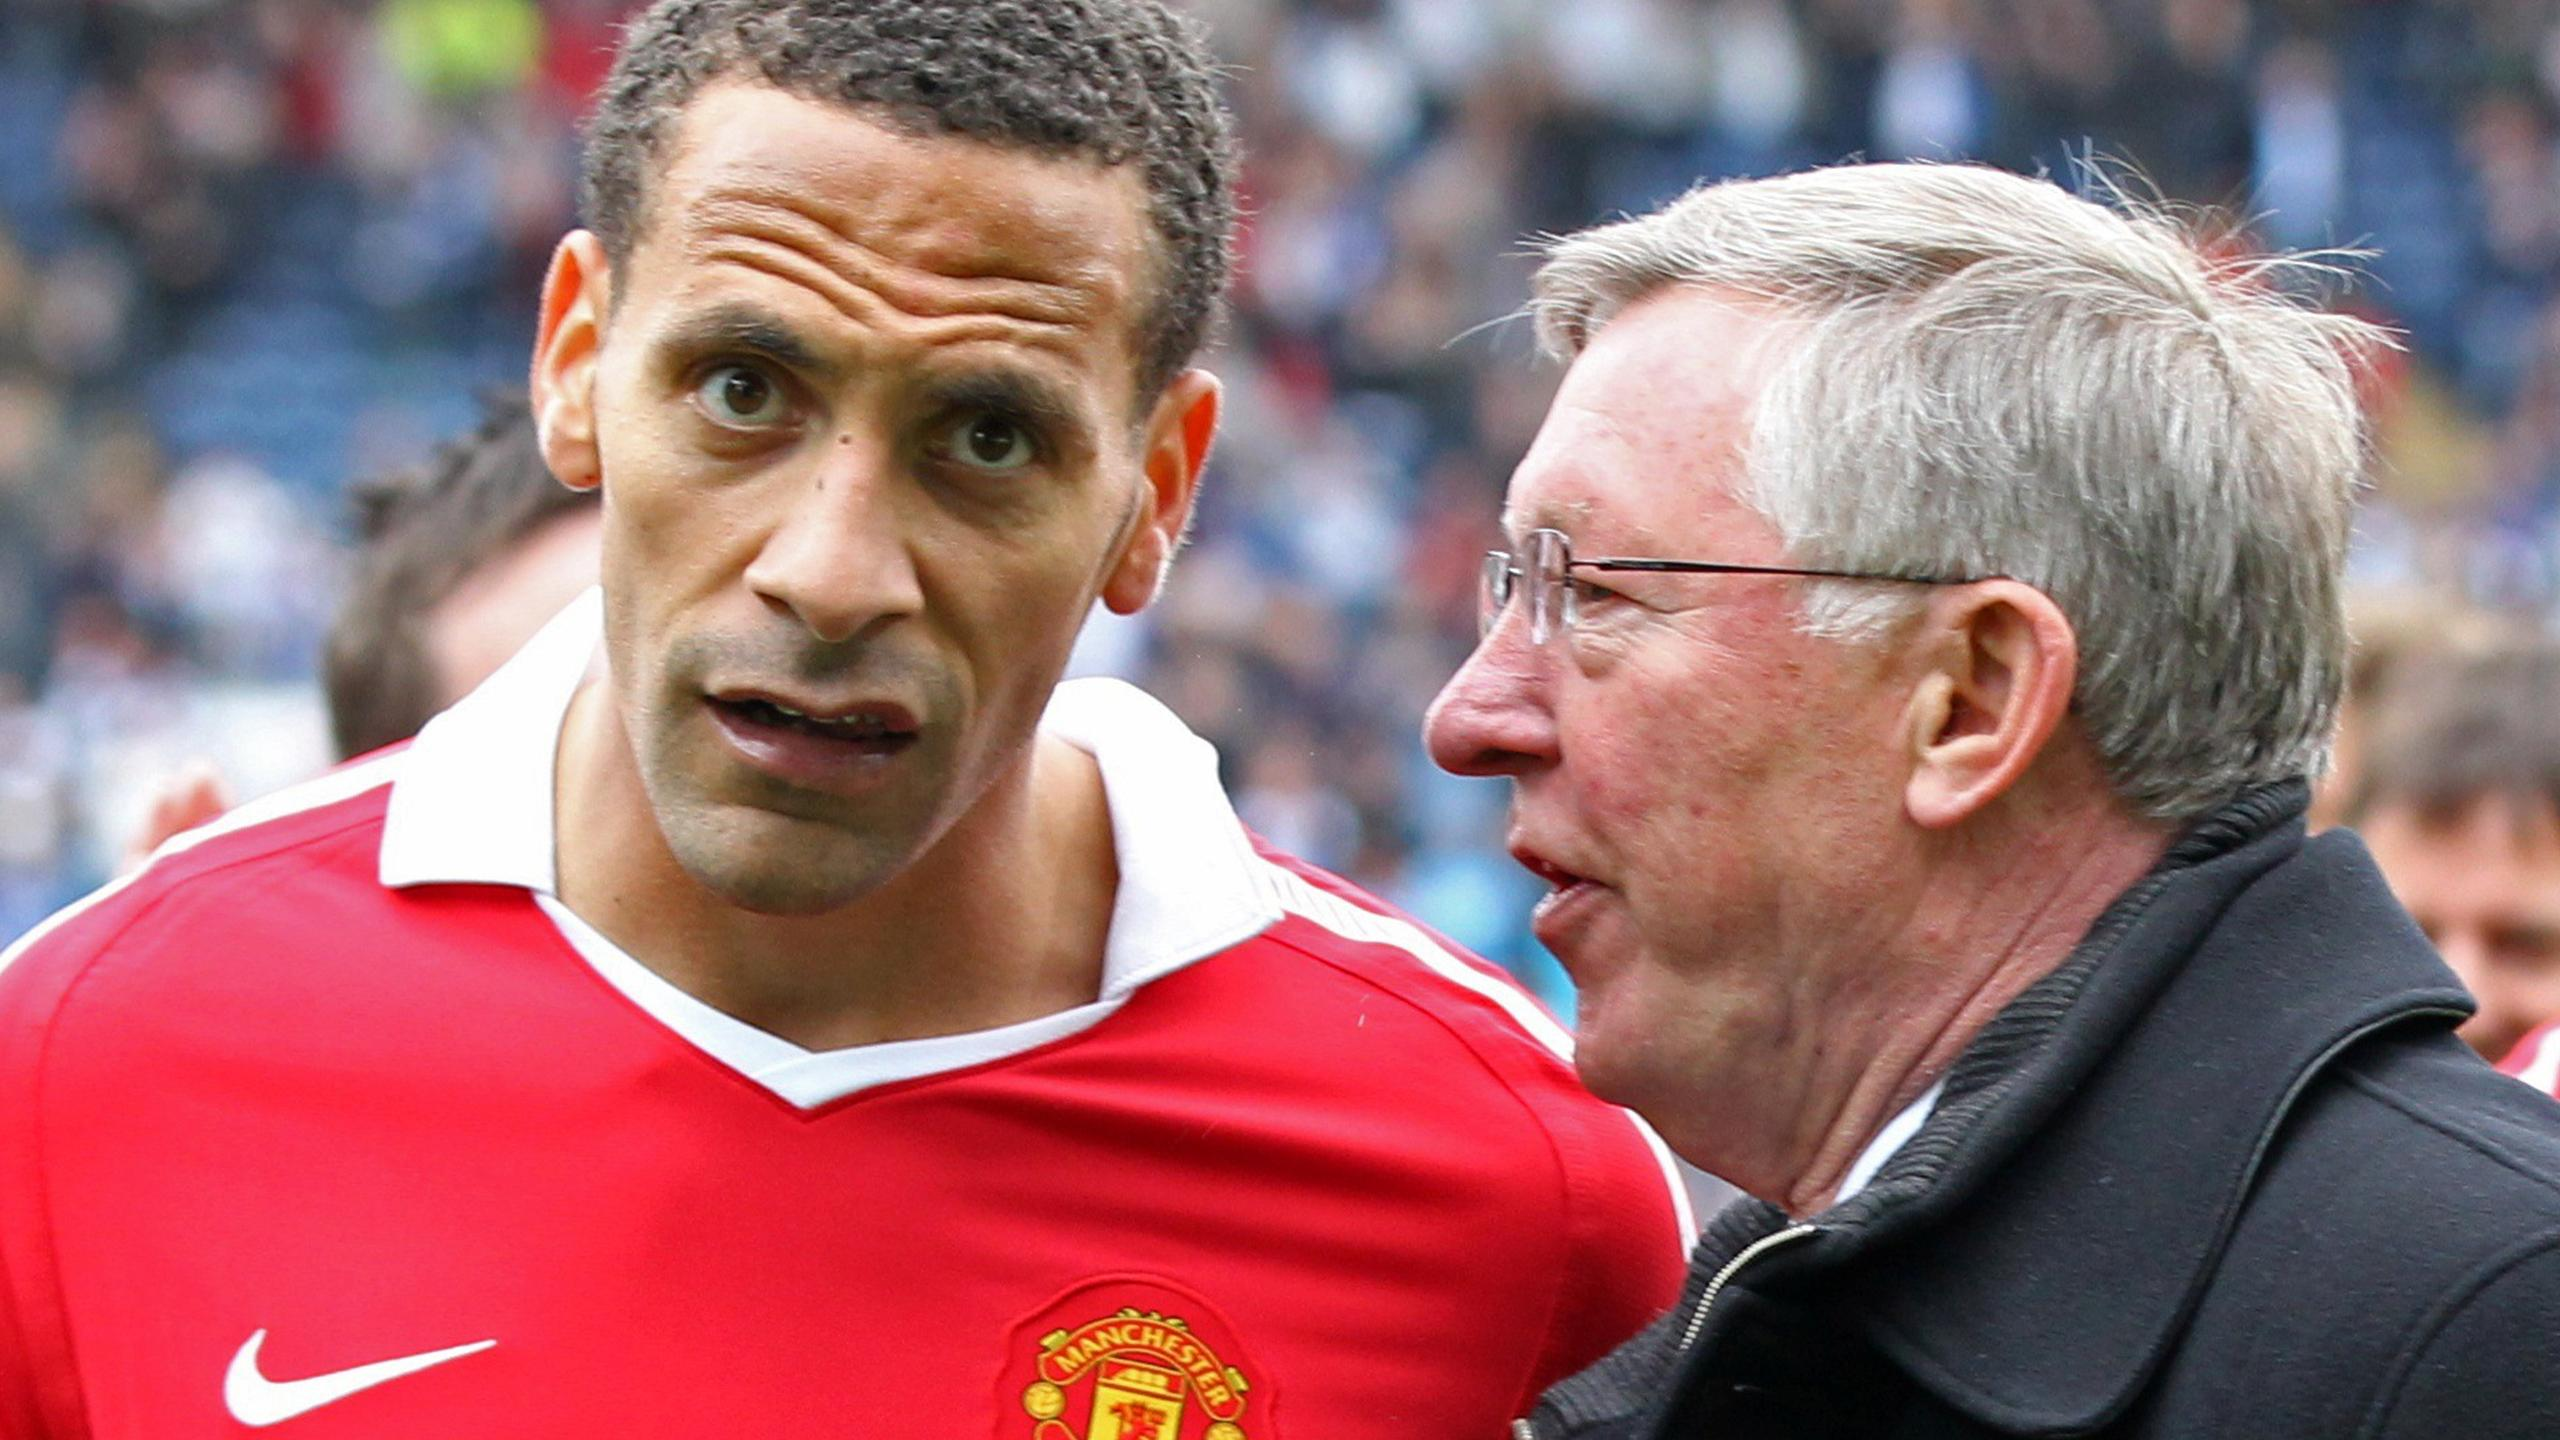 Sir Alex Ferguson and Rio Ferdinand while at Manchester United